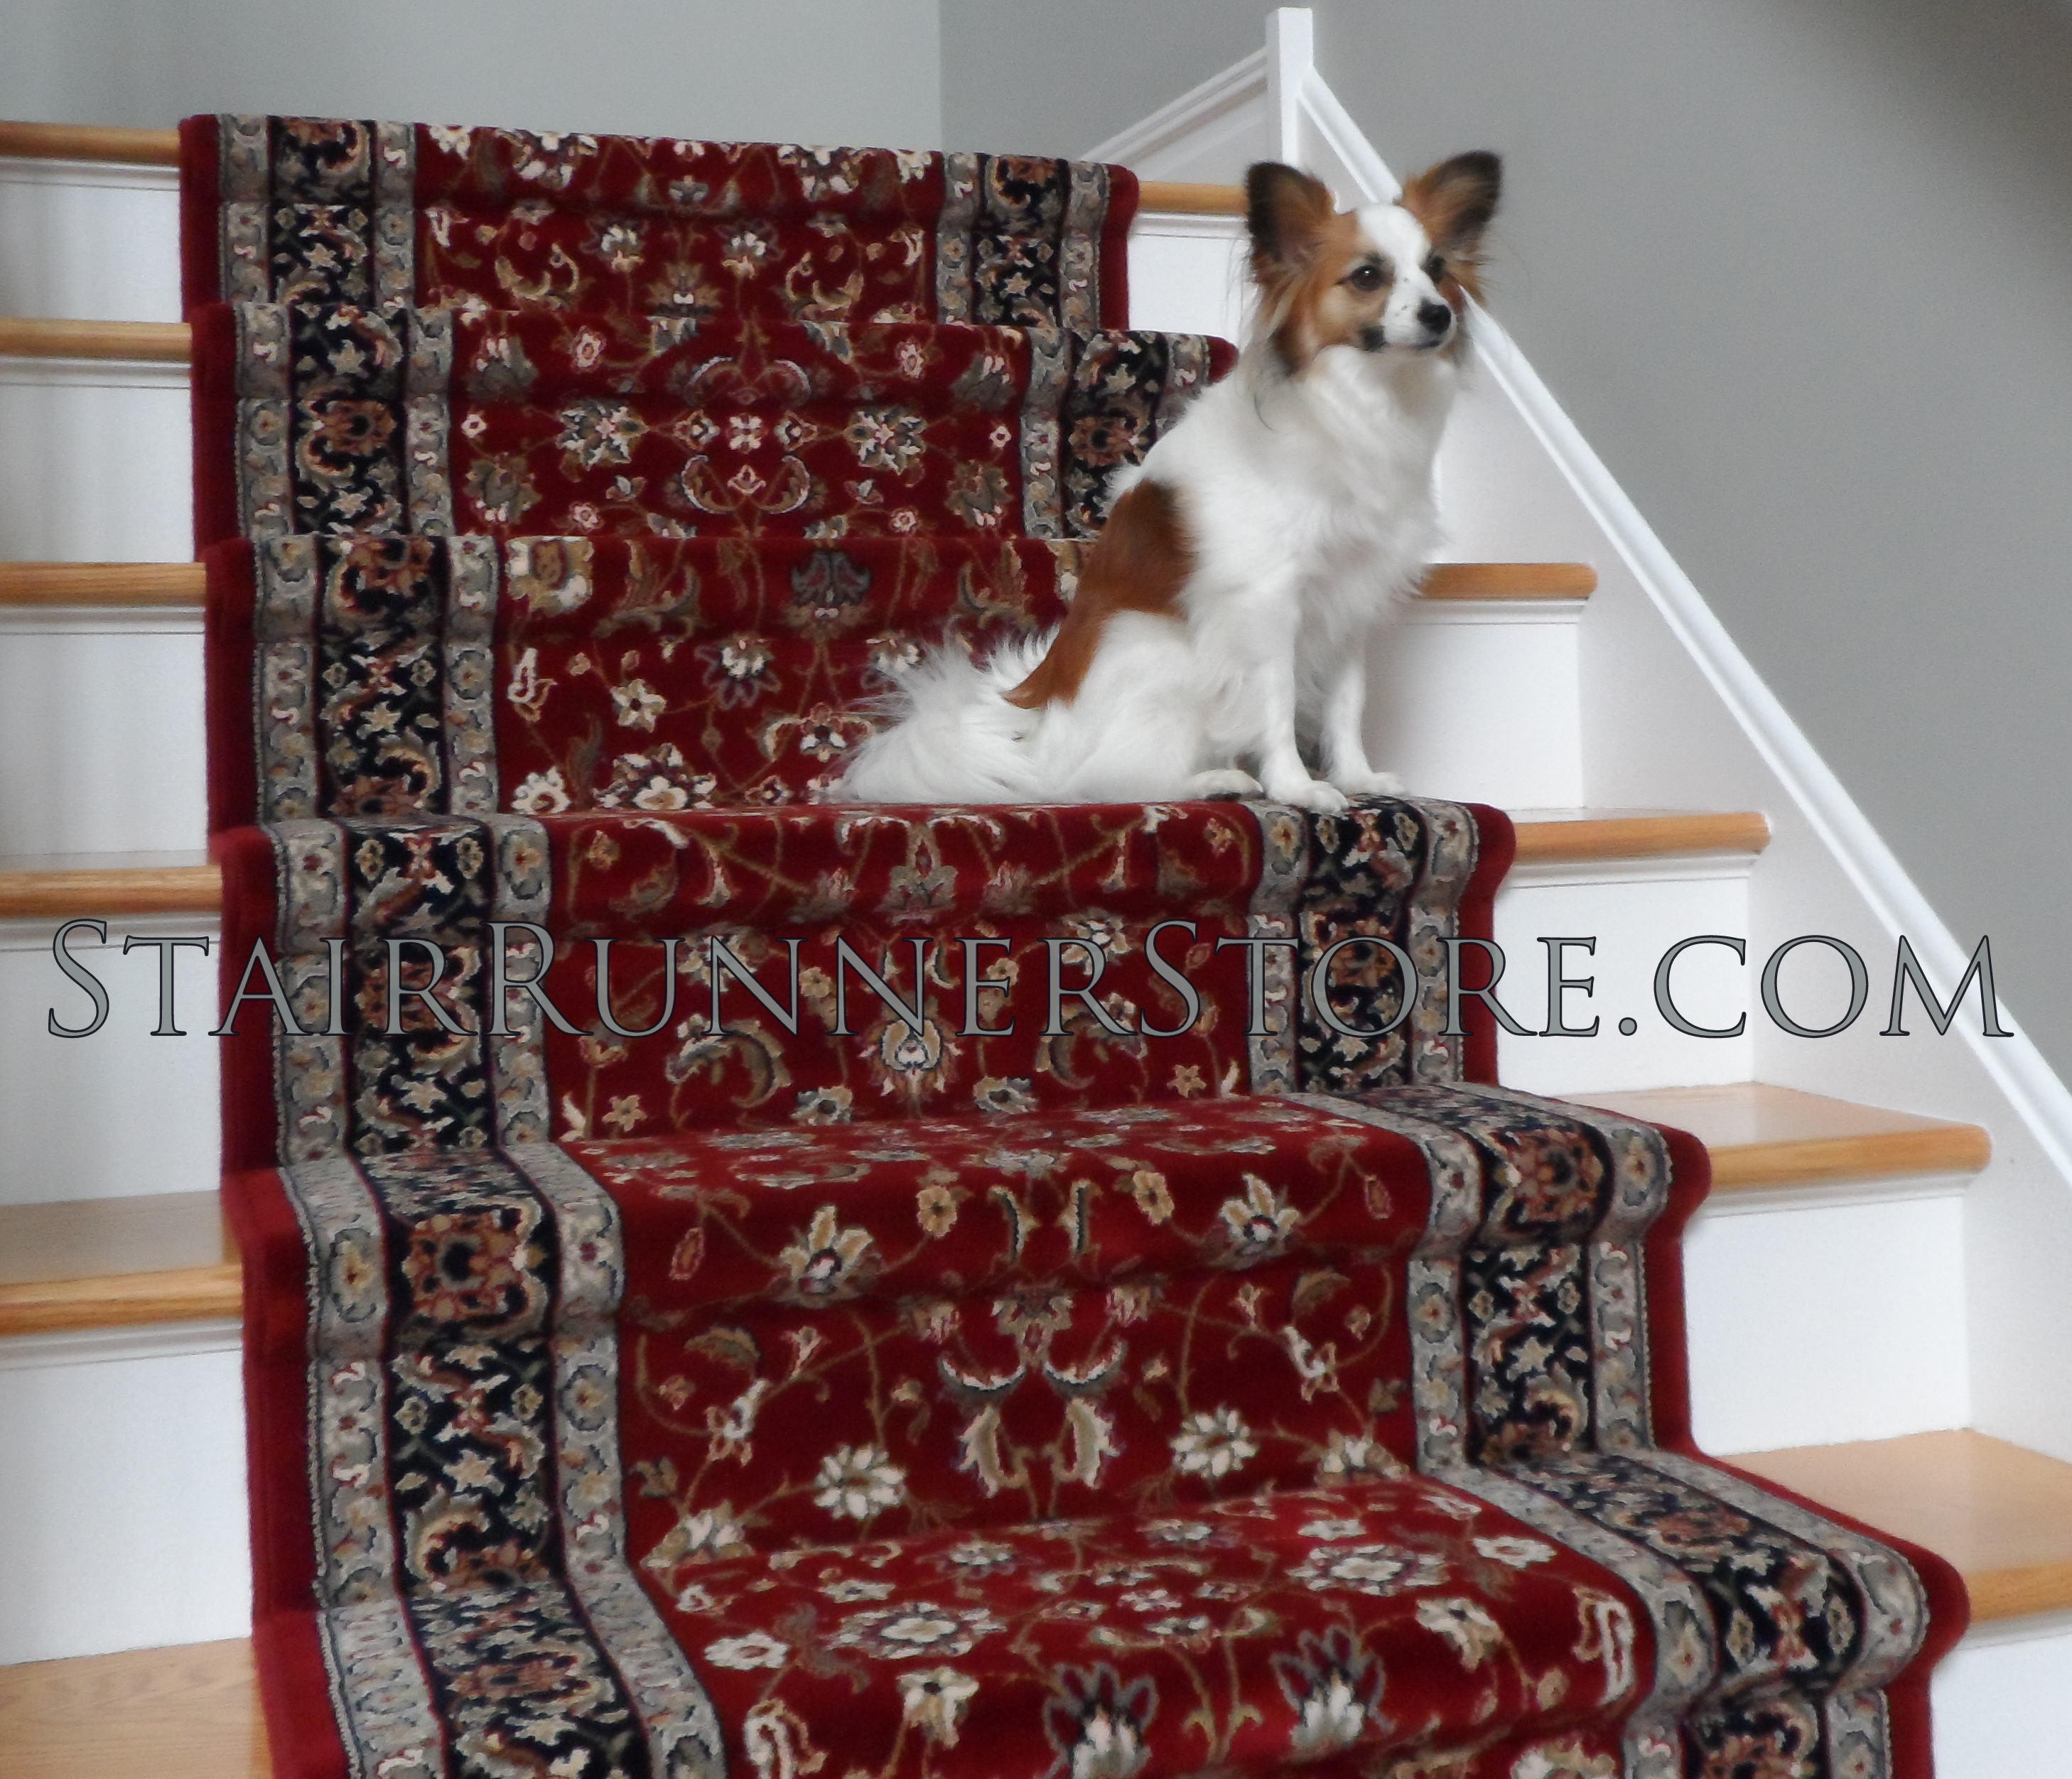 Stair Runner Installation Pets On Stairs 3412